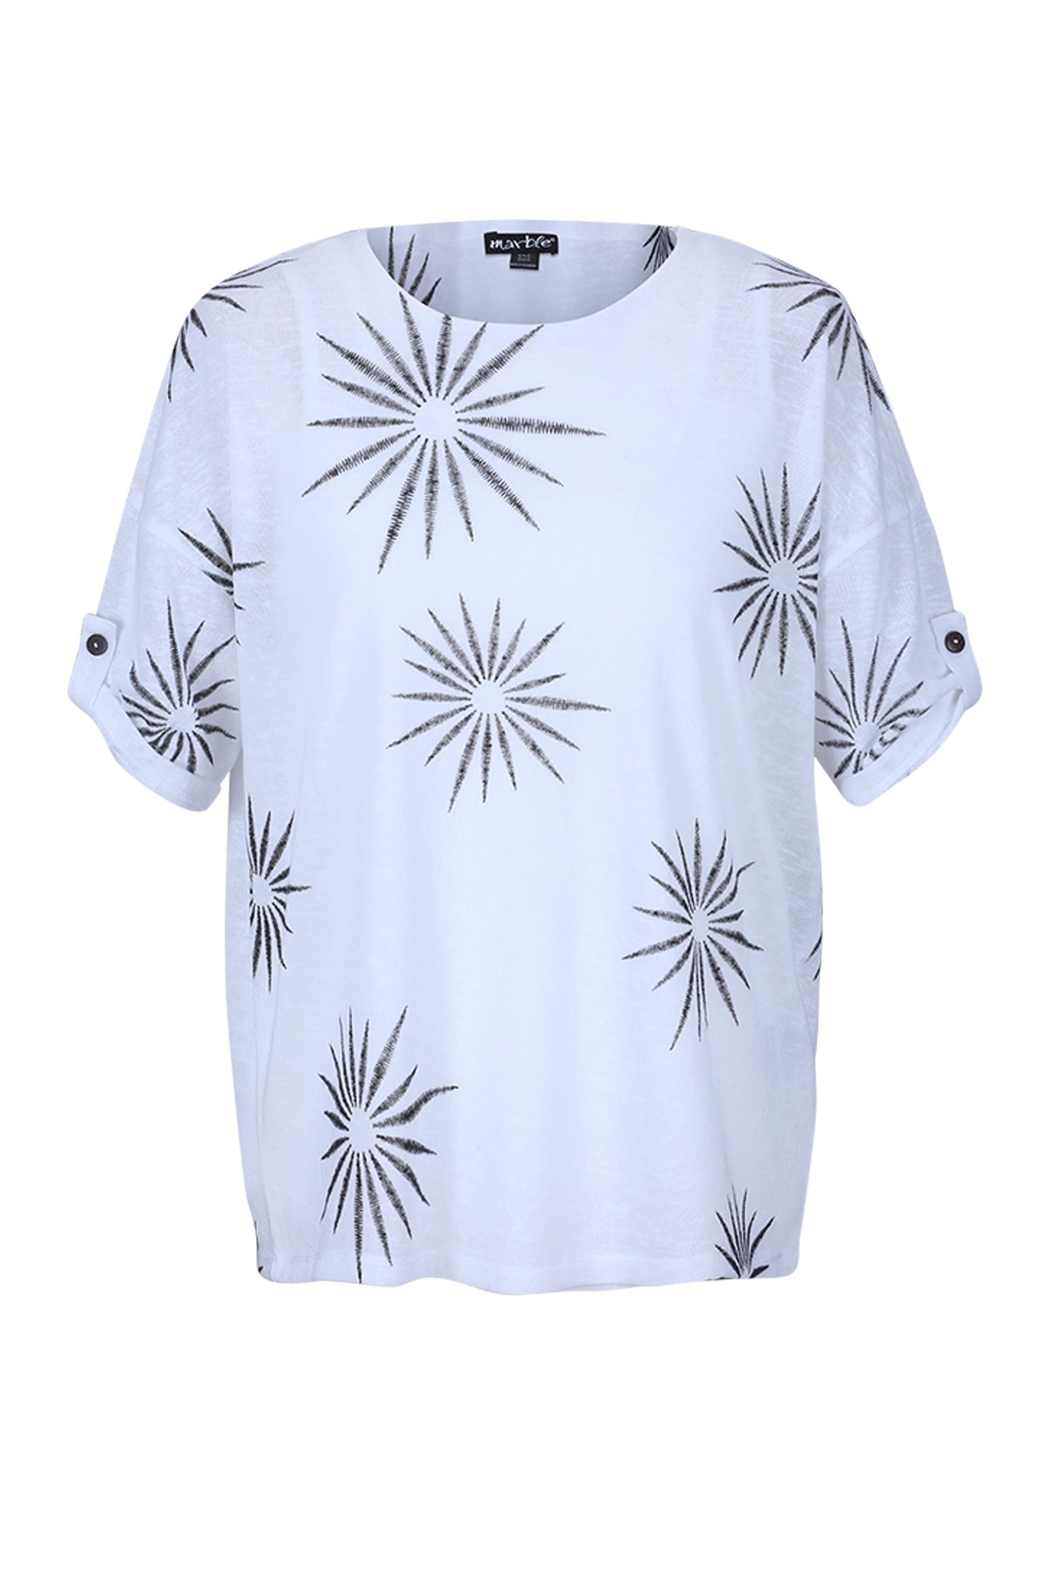 Marble Two-Piece Starburst Top - Main Image